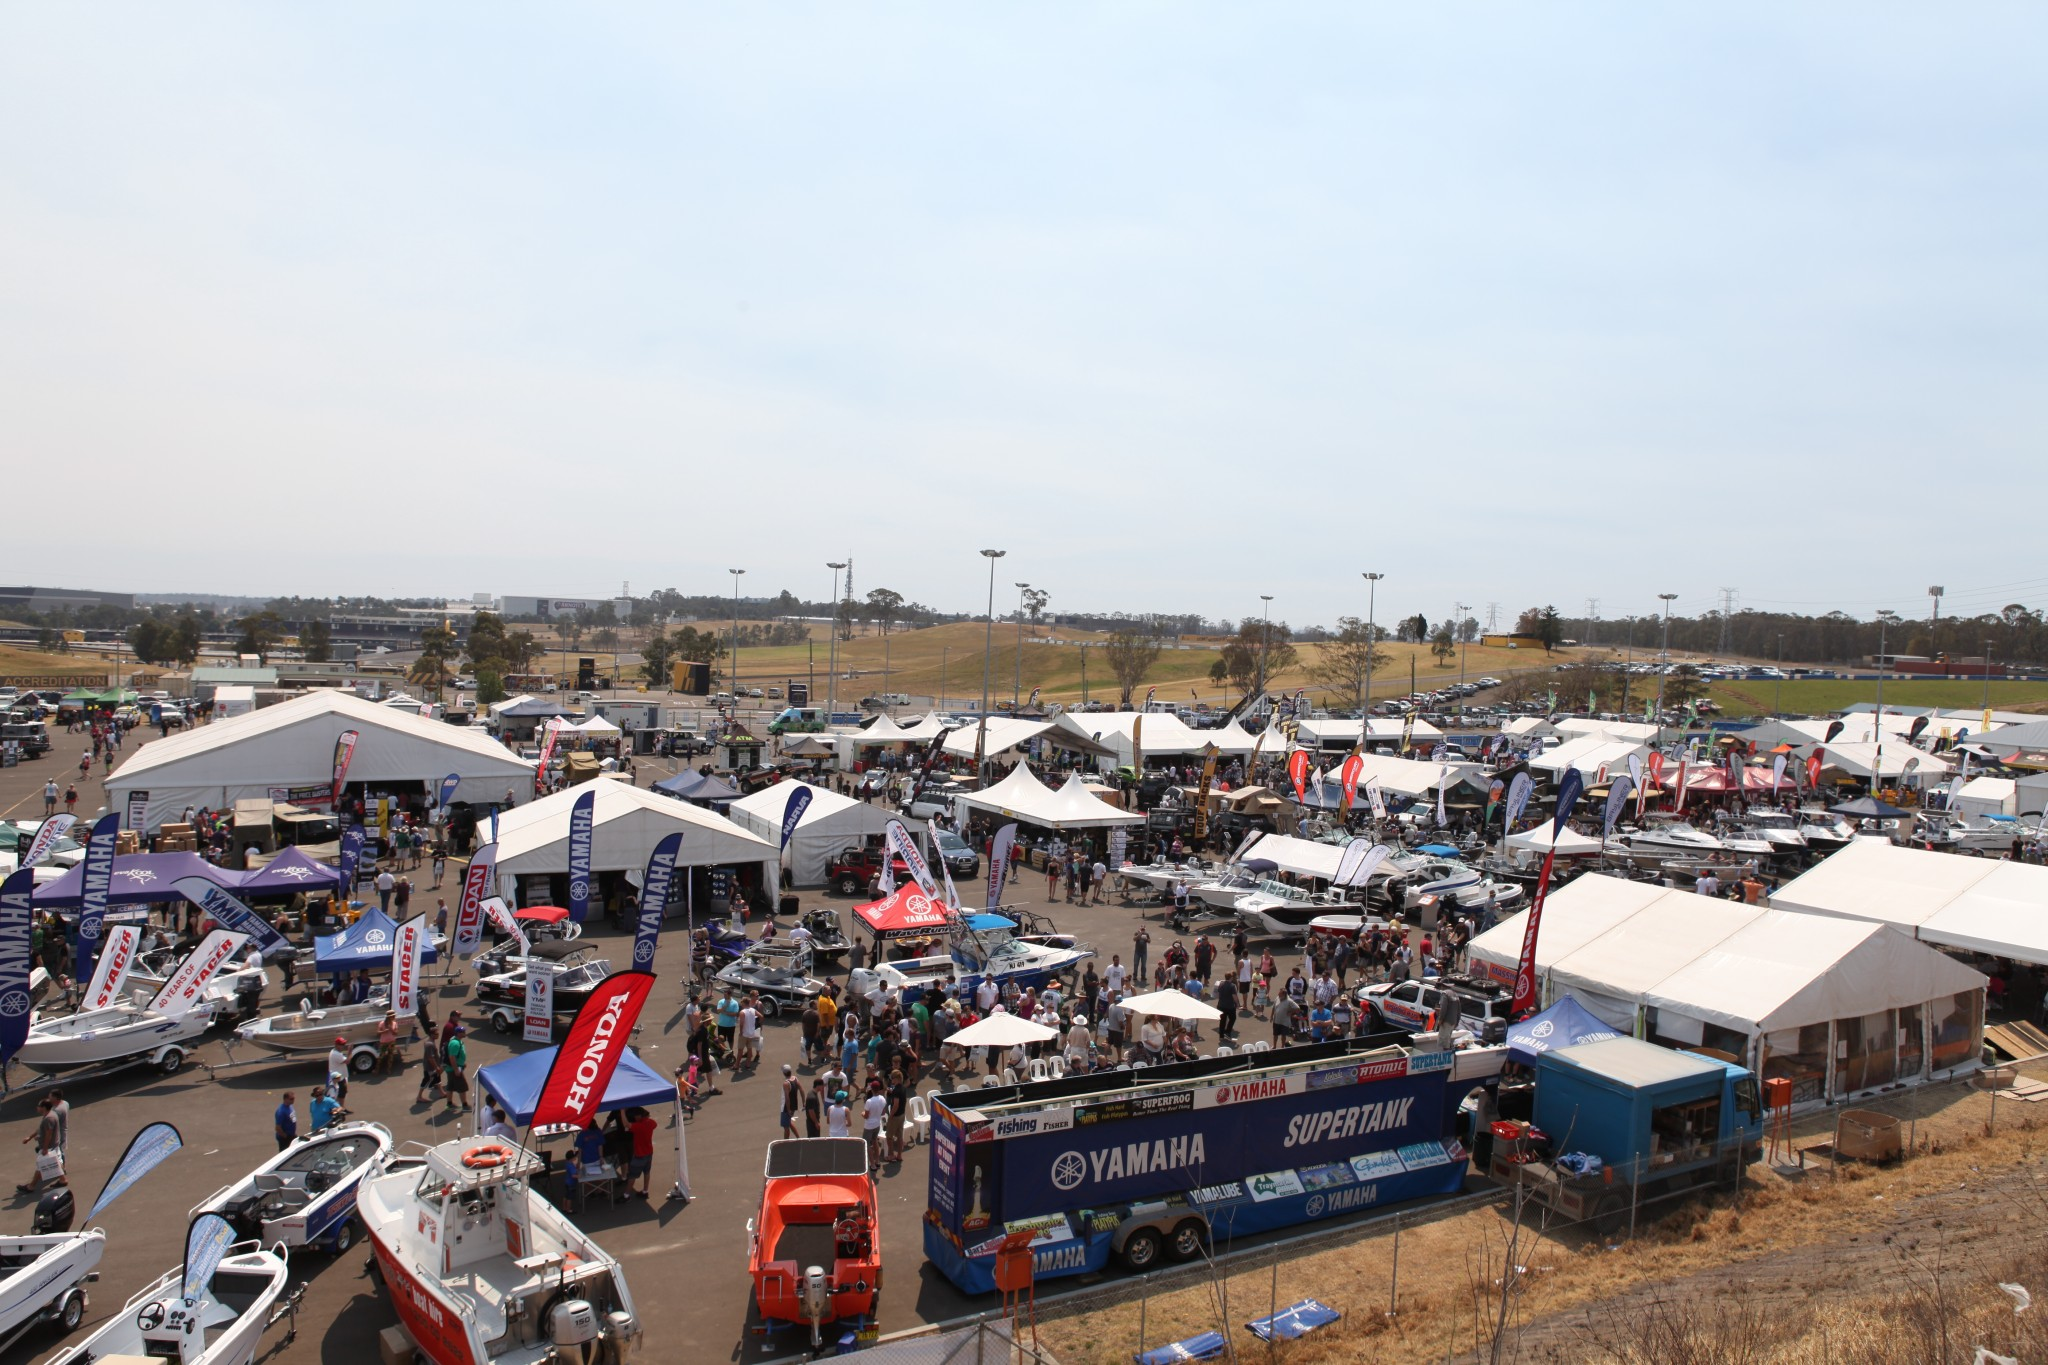 Sydney 4WD & Adventure Show. This Weekend!